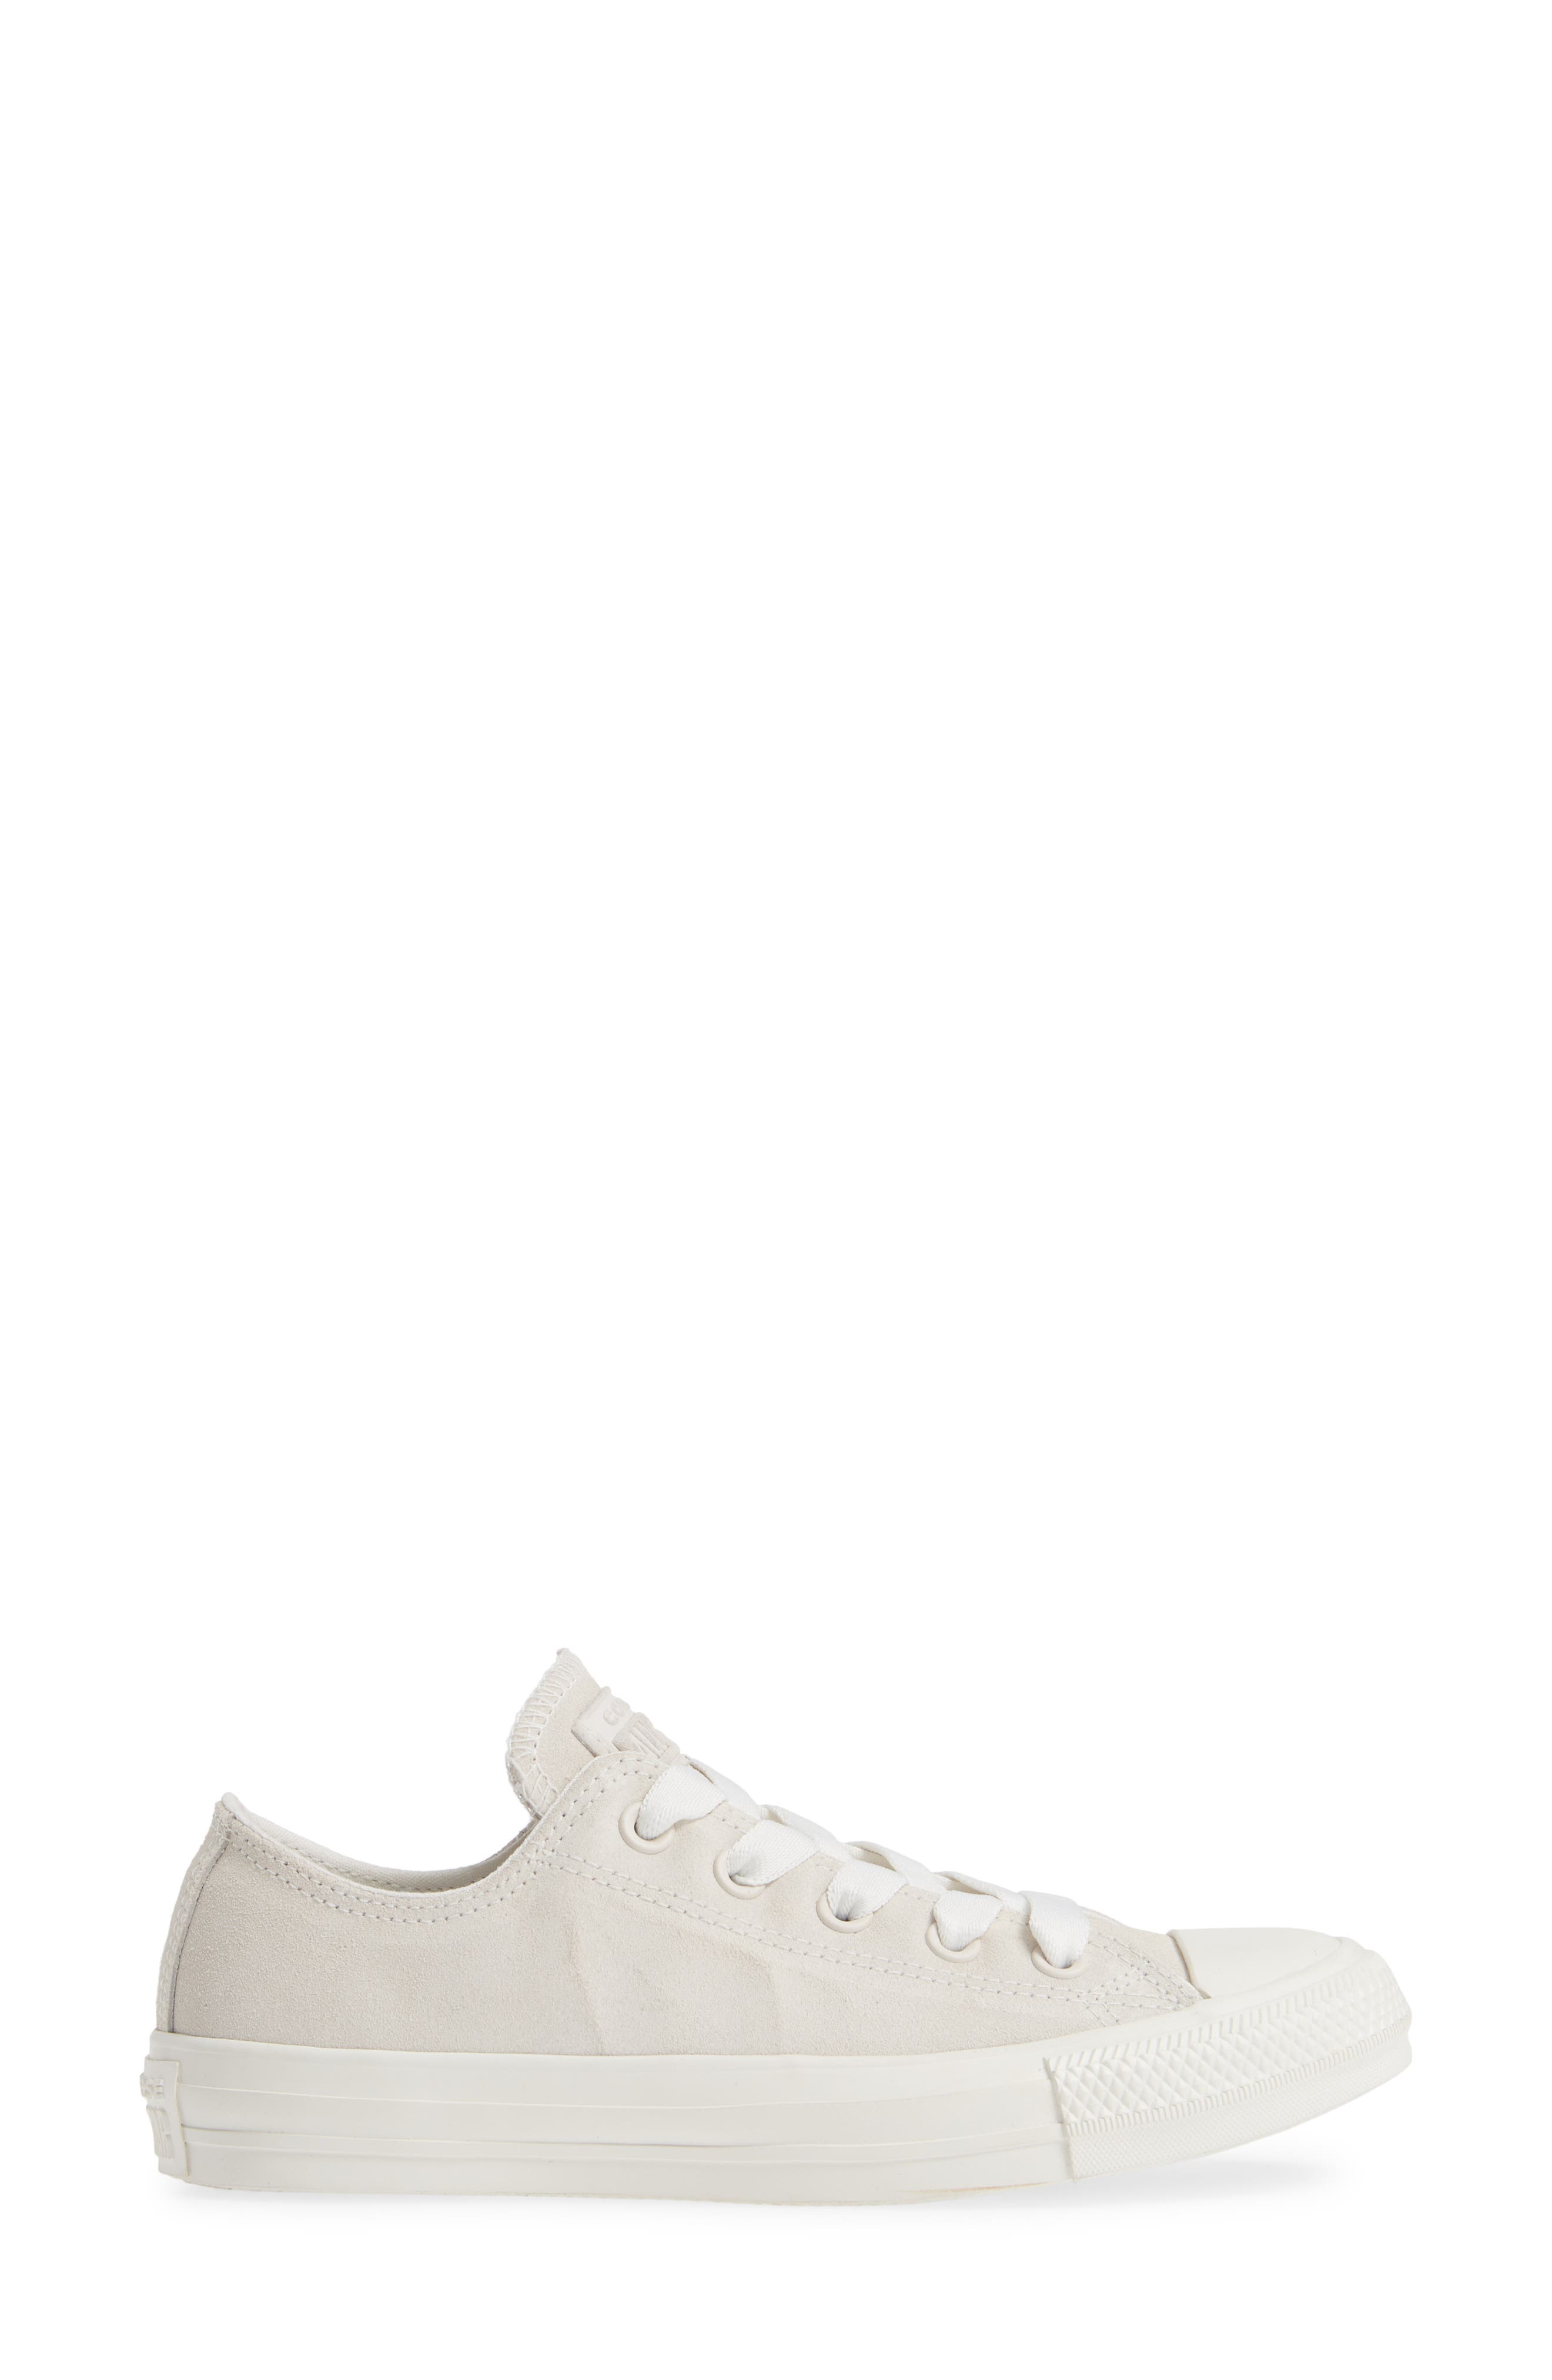 CONVERSE, Chuck Taylor<sup>®</sup> All Star<sup>®</sup> Ox Sneaker, Alternate thumbnail 3, color, VINTAGE WHITE SUEDE